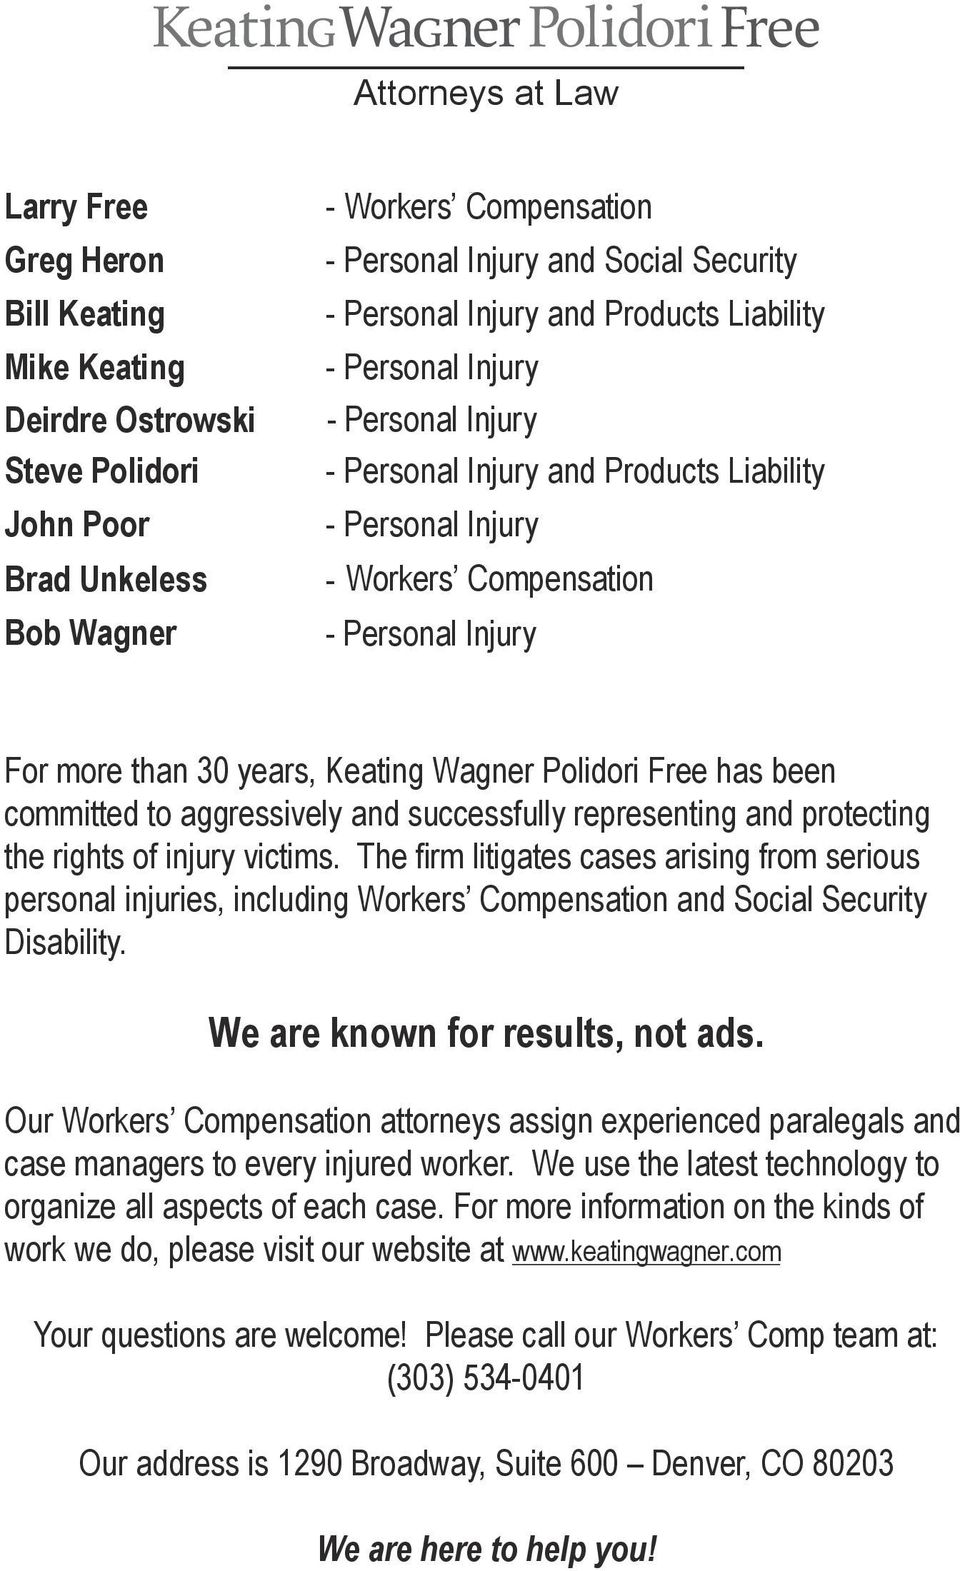 Compensation For more than 30 years, Keating Wagner Polidori Free has been committed to aggressively and successfully representing and protecting the rights of injury victims.